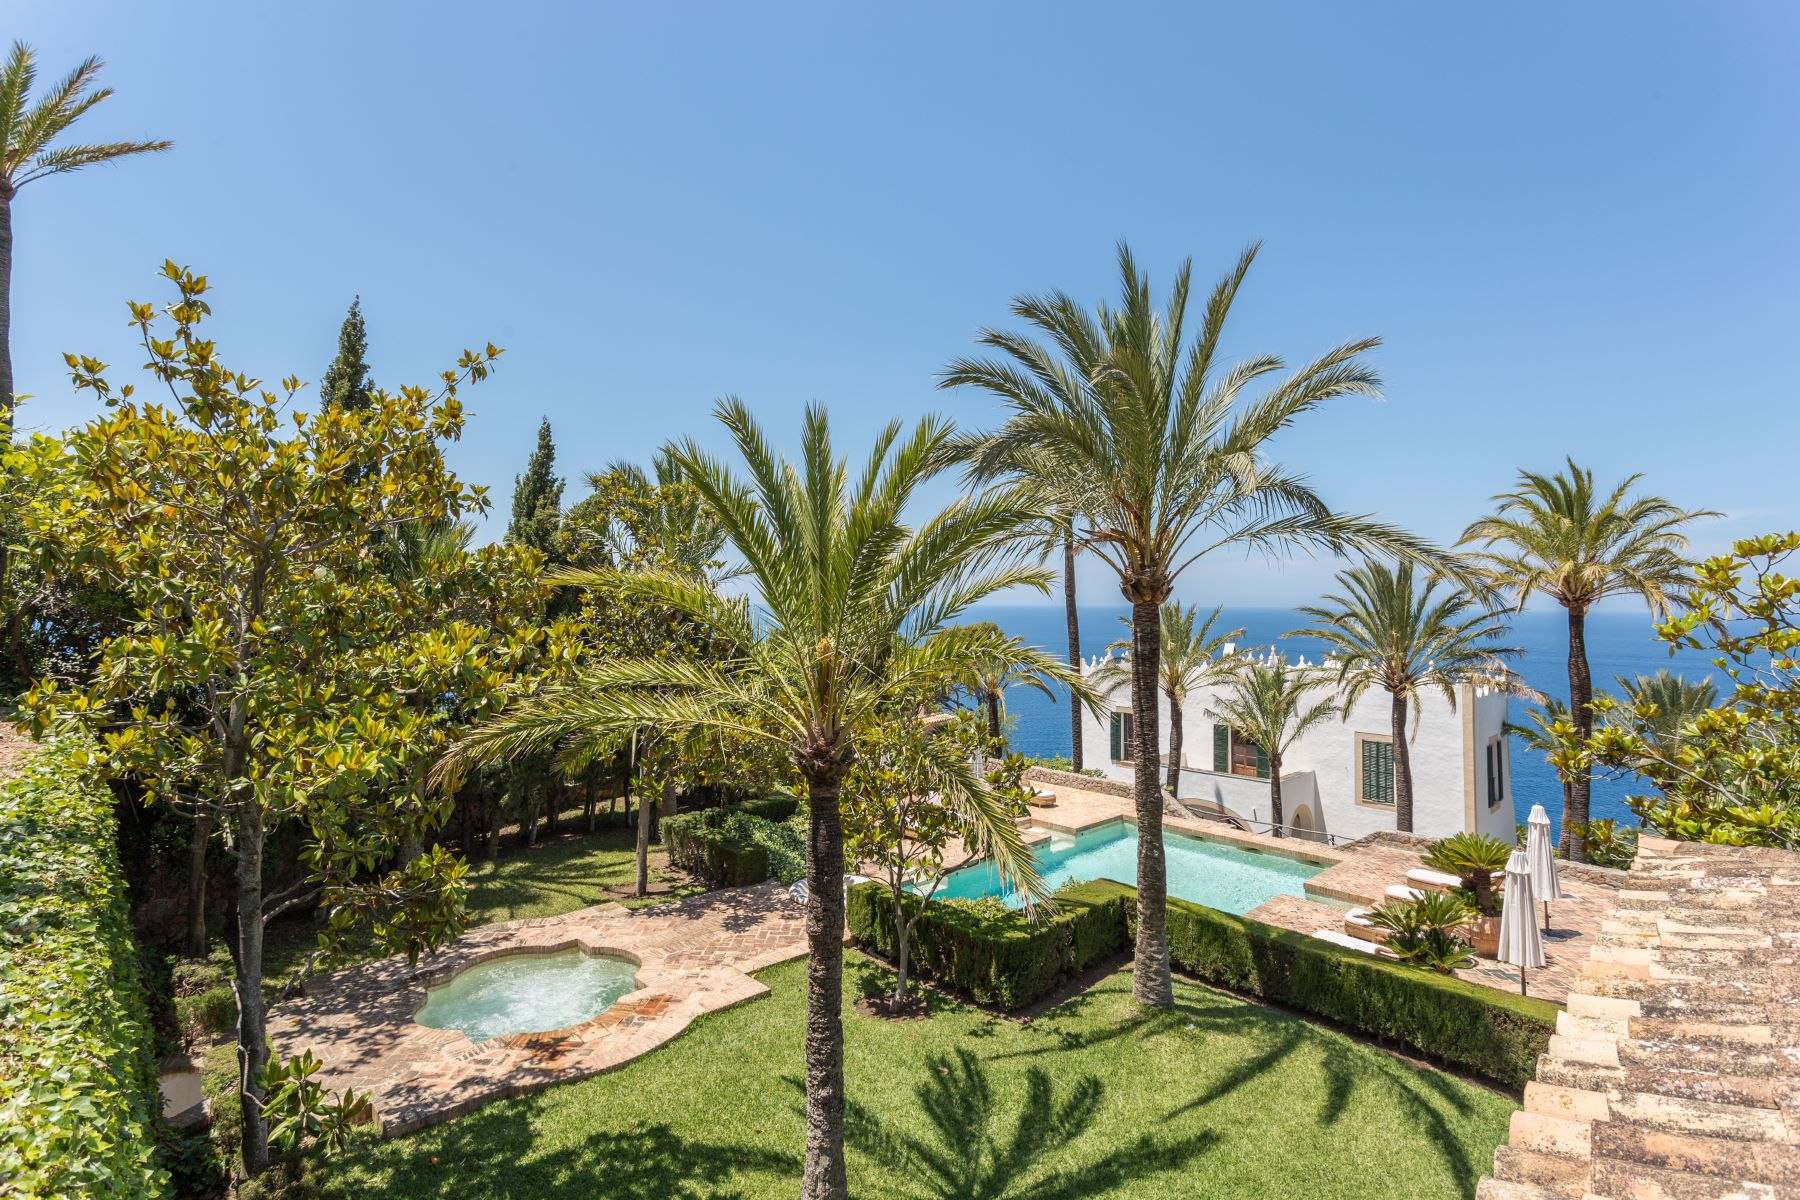 Single Family Home for Sale at Spectacular Mansion in Puerto Valldemossa Valldemossa, Balearic Islands Spain